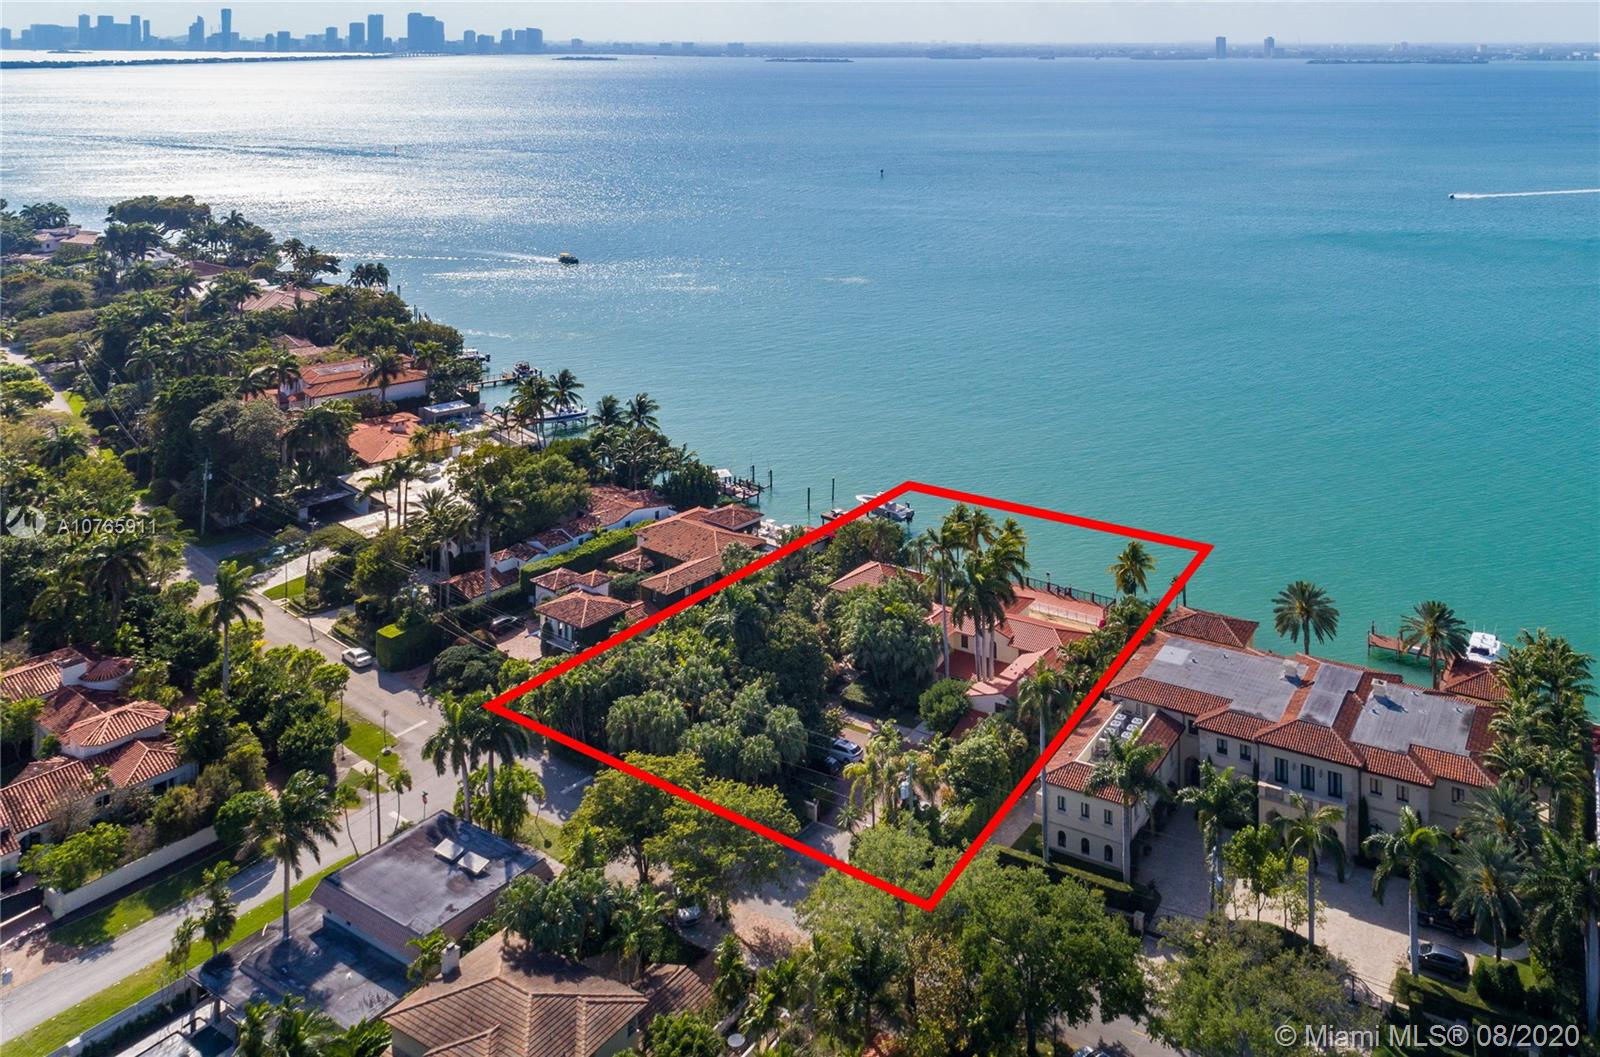 5212 N Bay Rd, Miami Beach, FL 33140